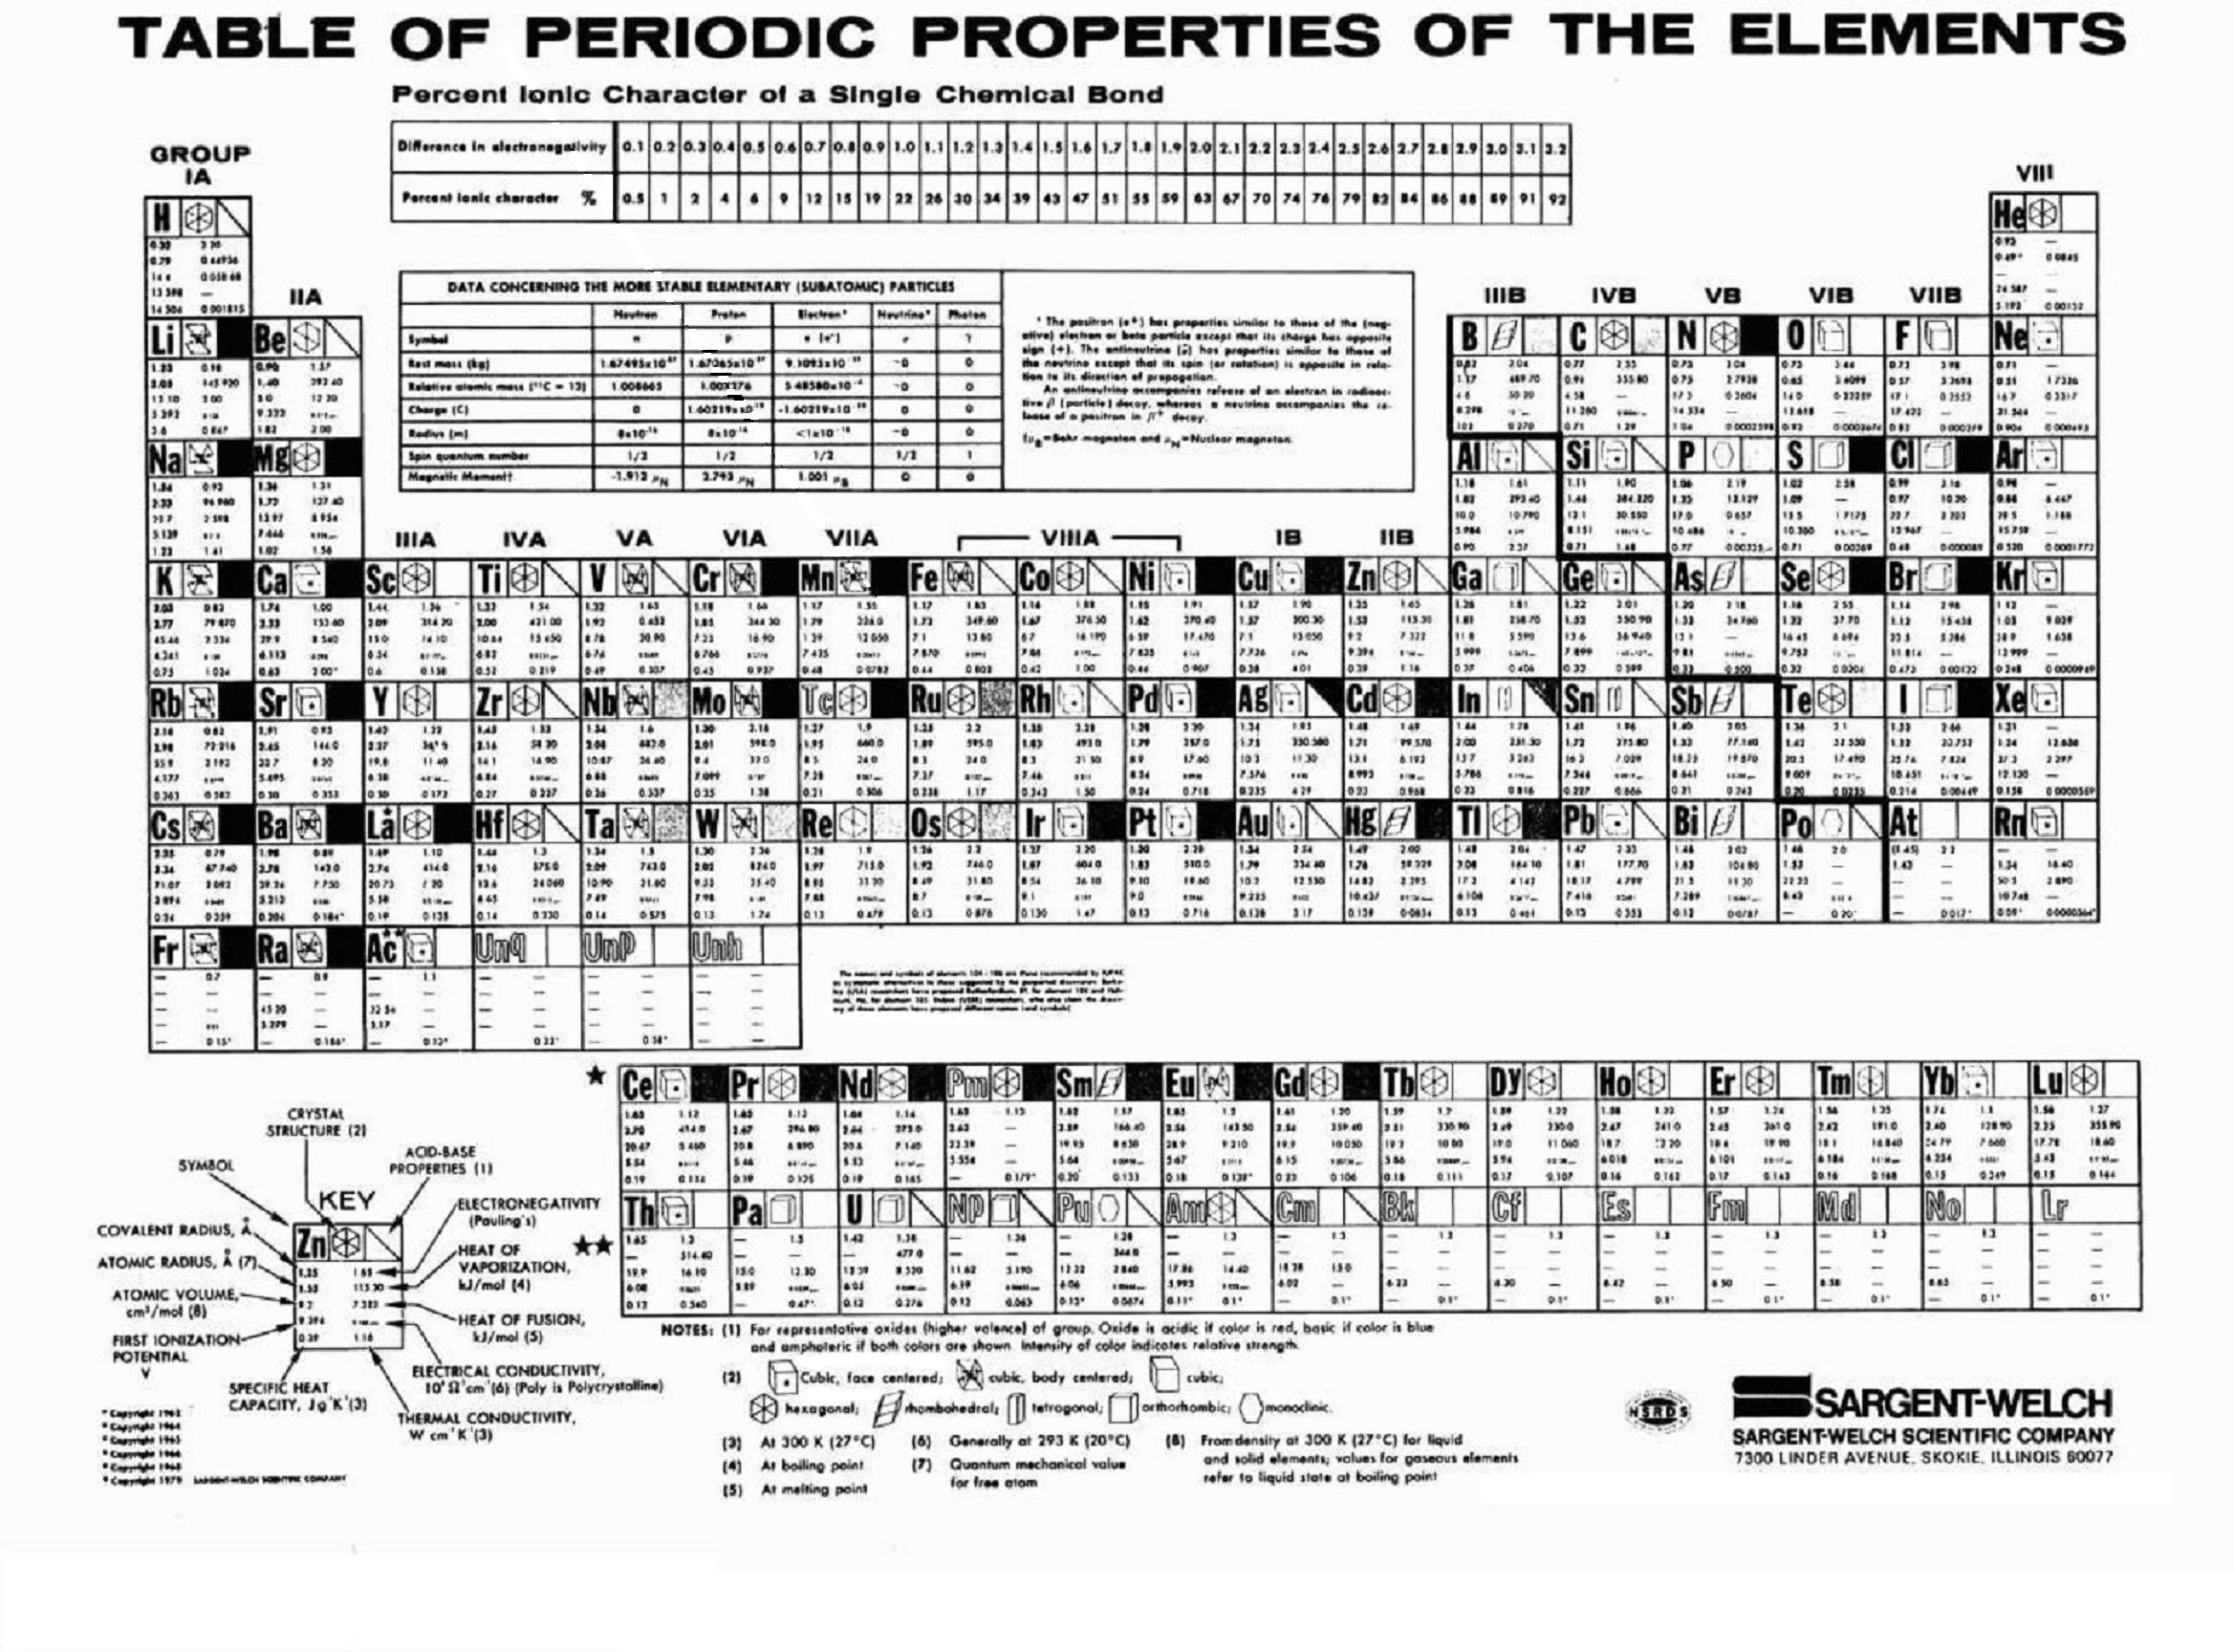 Periodictablechemicalelementsg periodic table chemical elements nfm urtaz Gallery